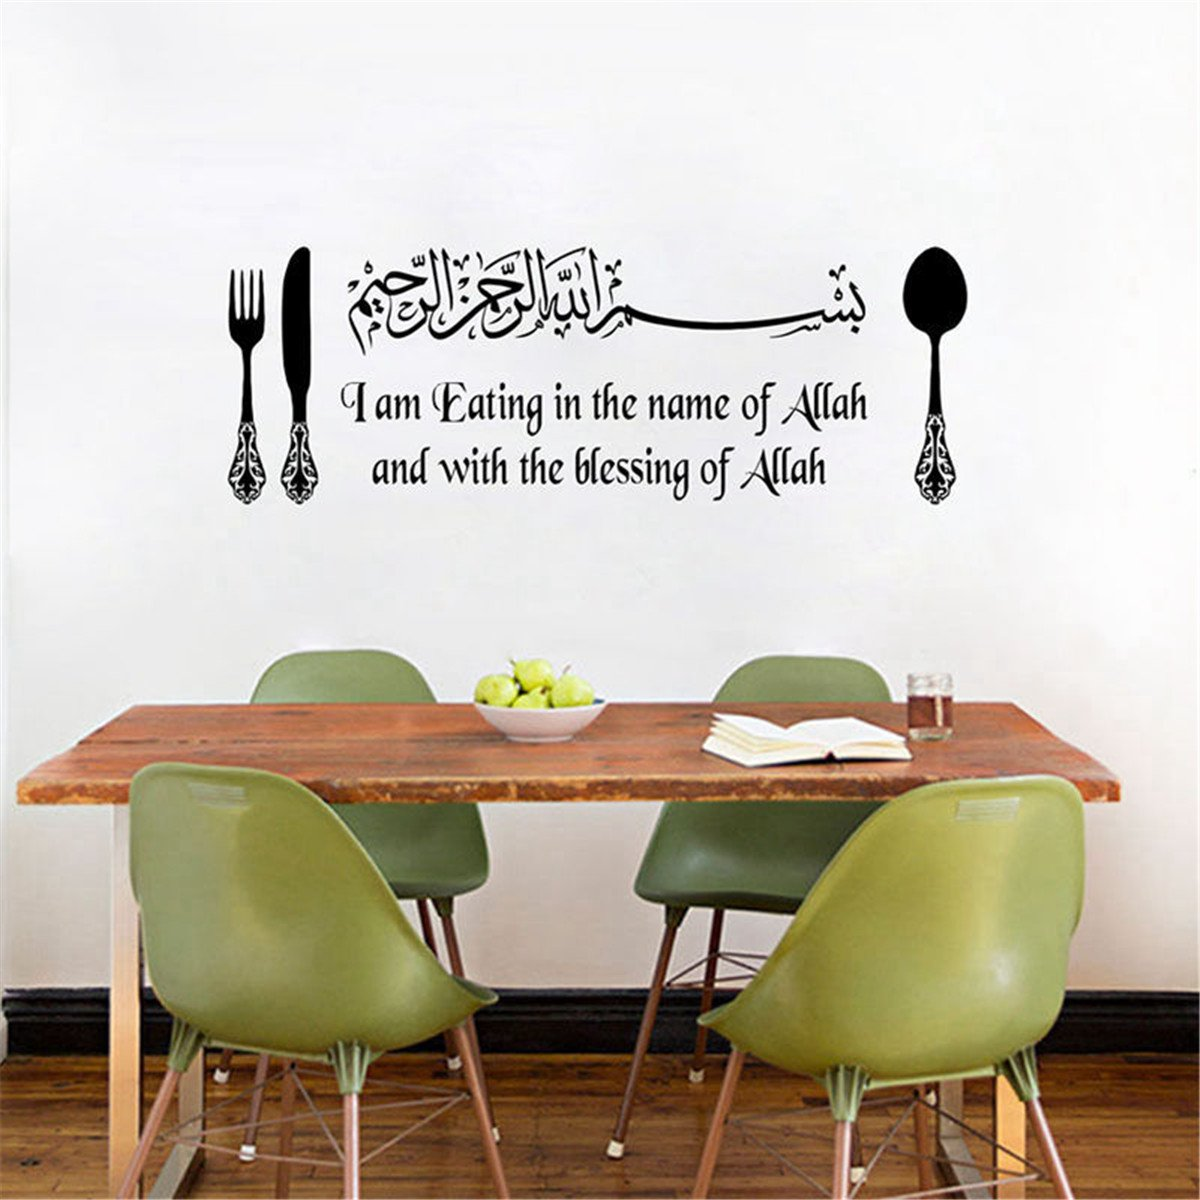 Large Muslim Islamic Wall Stickers Dining Room Kitchen Removable PVC Vinyl Art Decal Mural Wallpaper Home Decoration Black